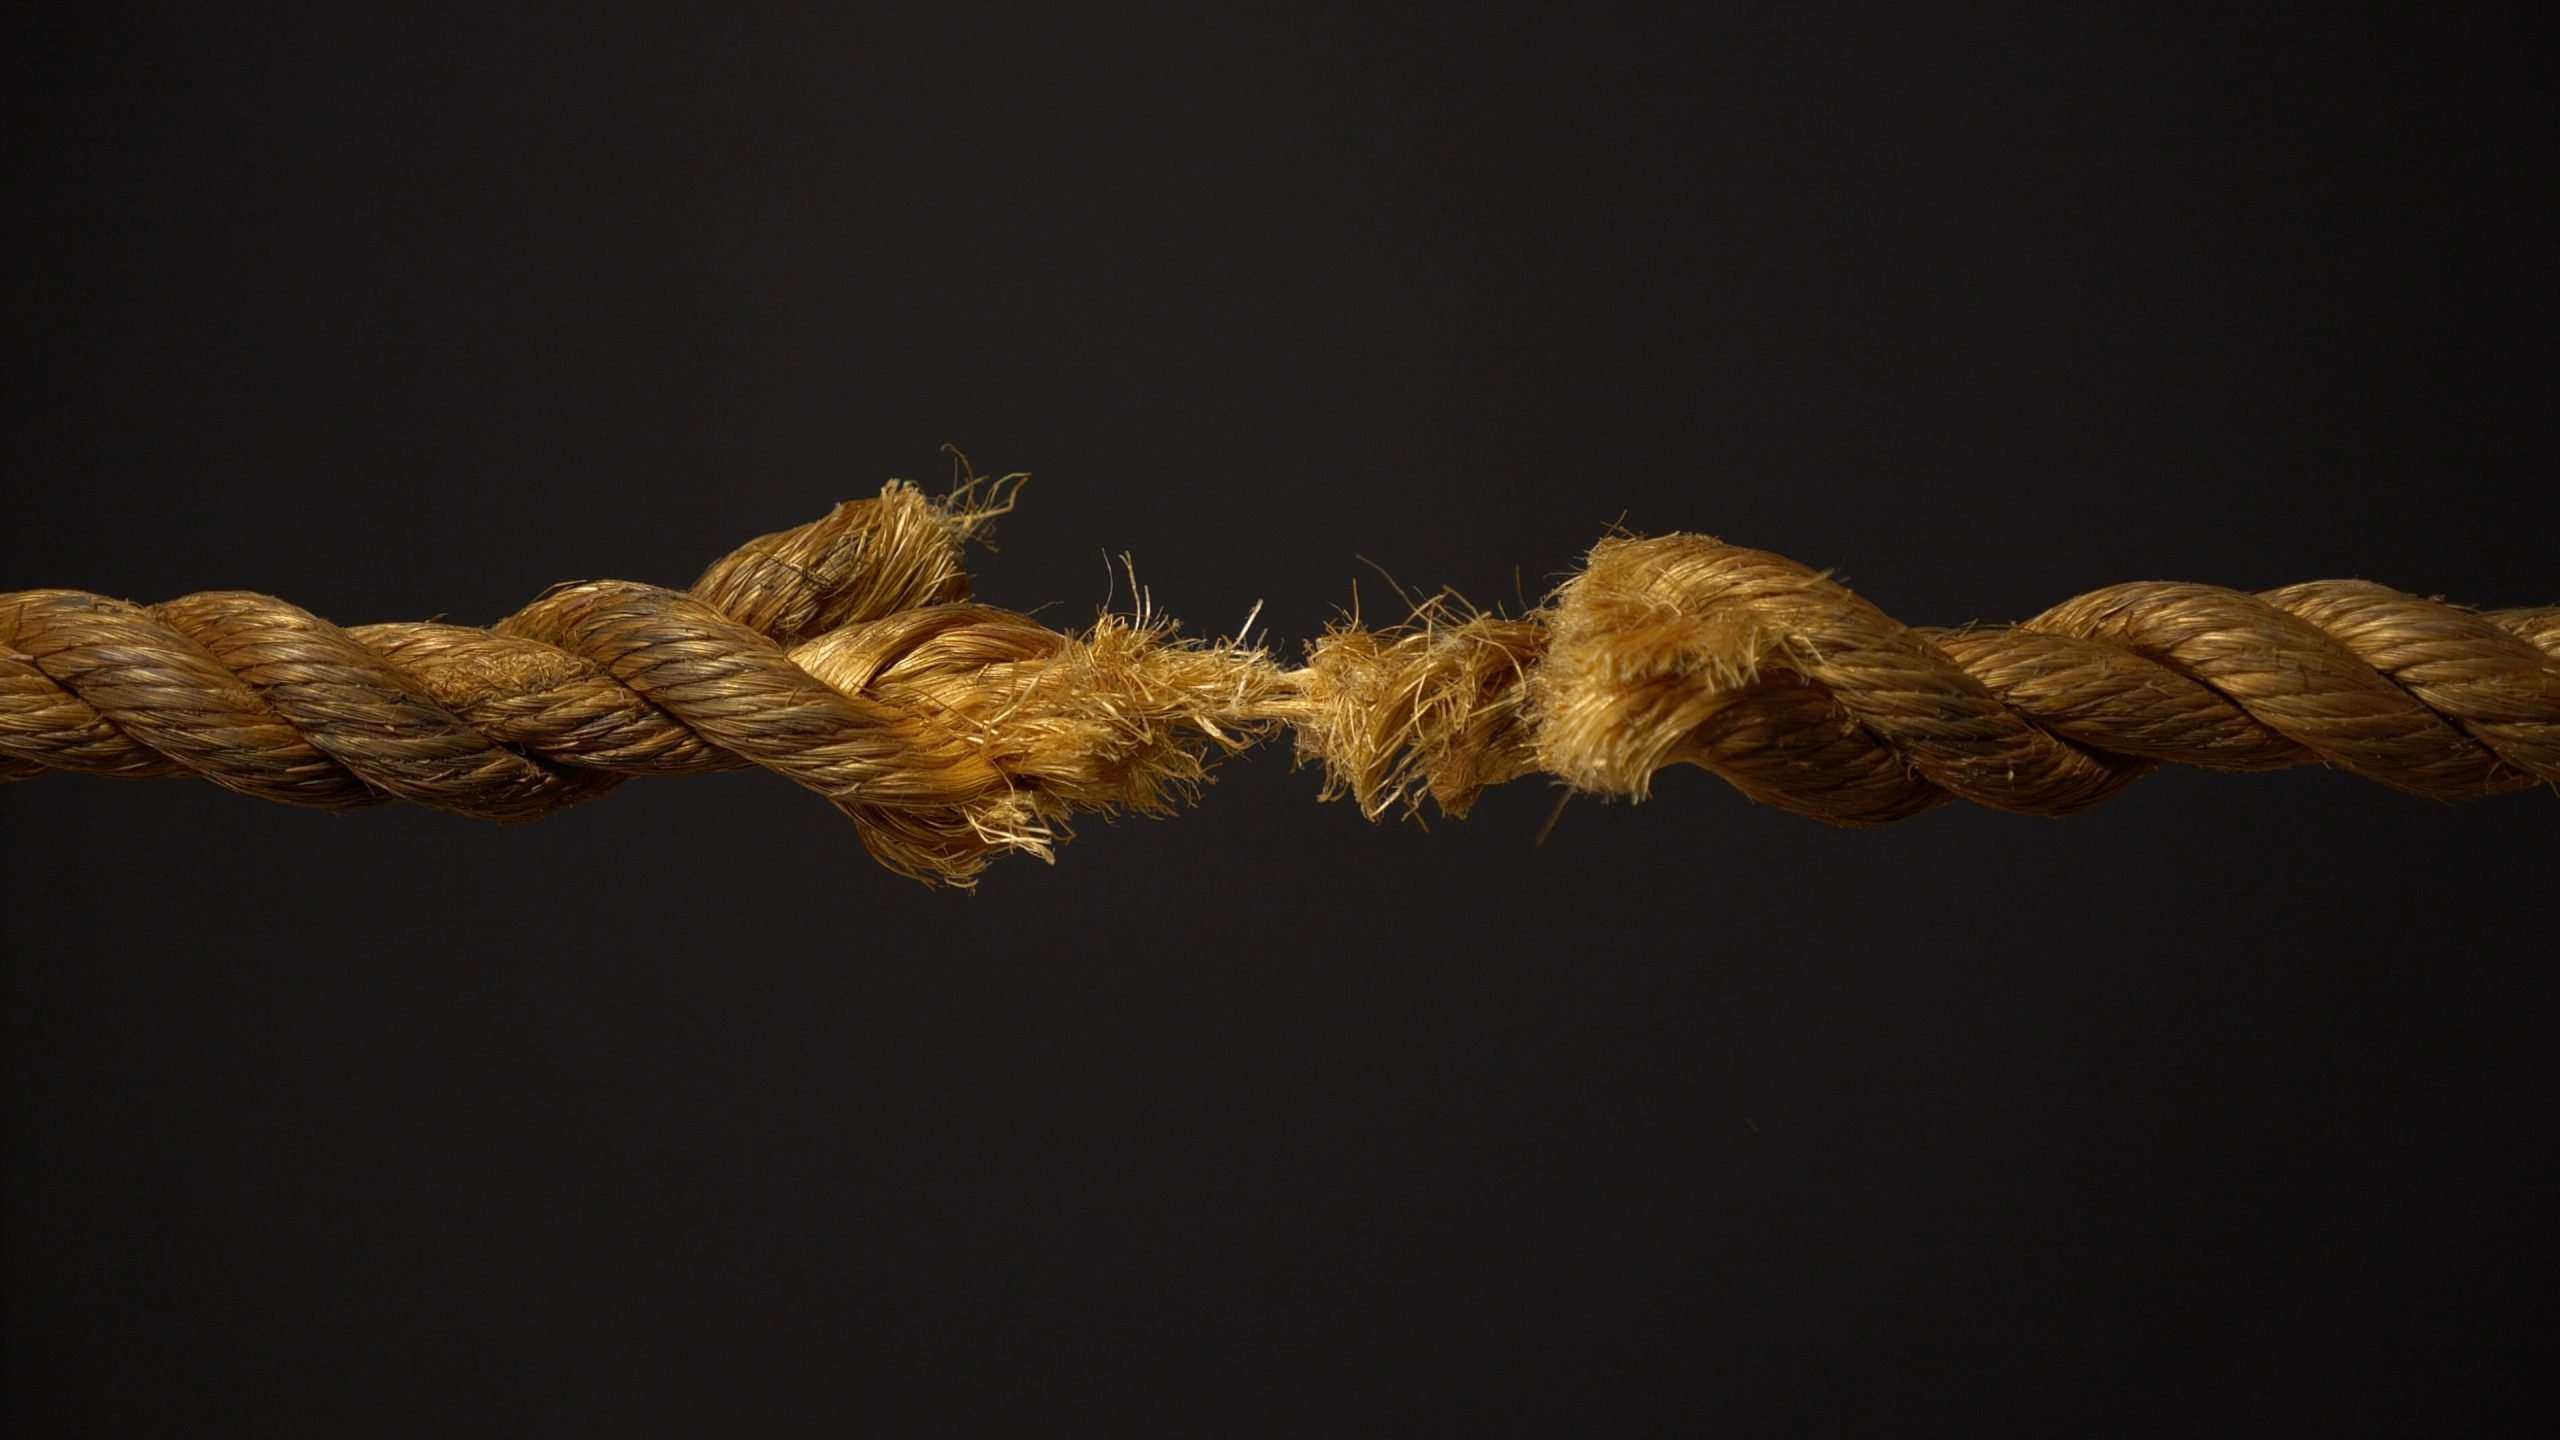 I'm at The End of My Rope! (What do I do?)